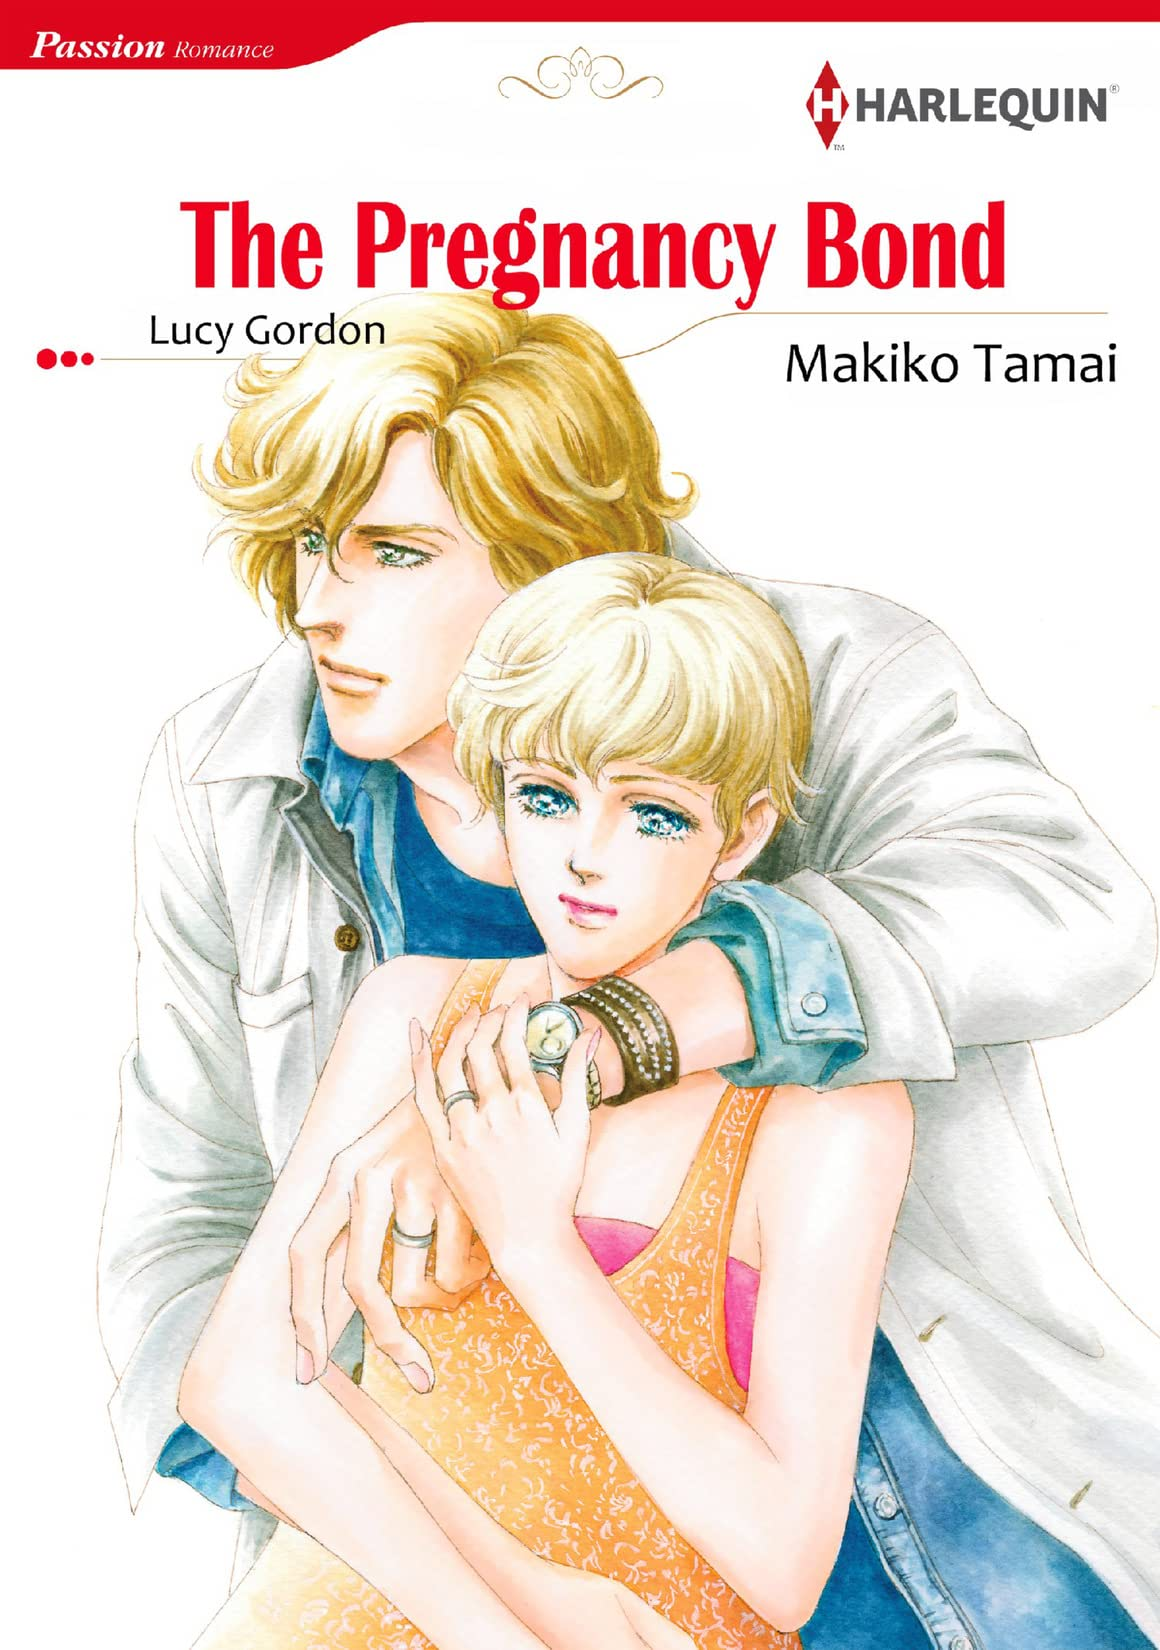 The Pregnancy Bond